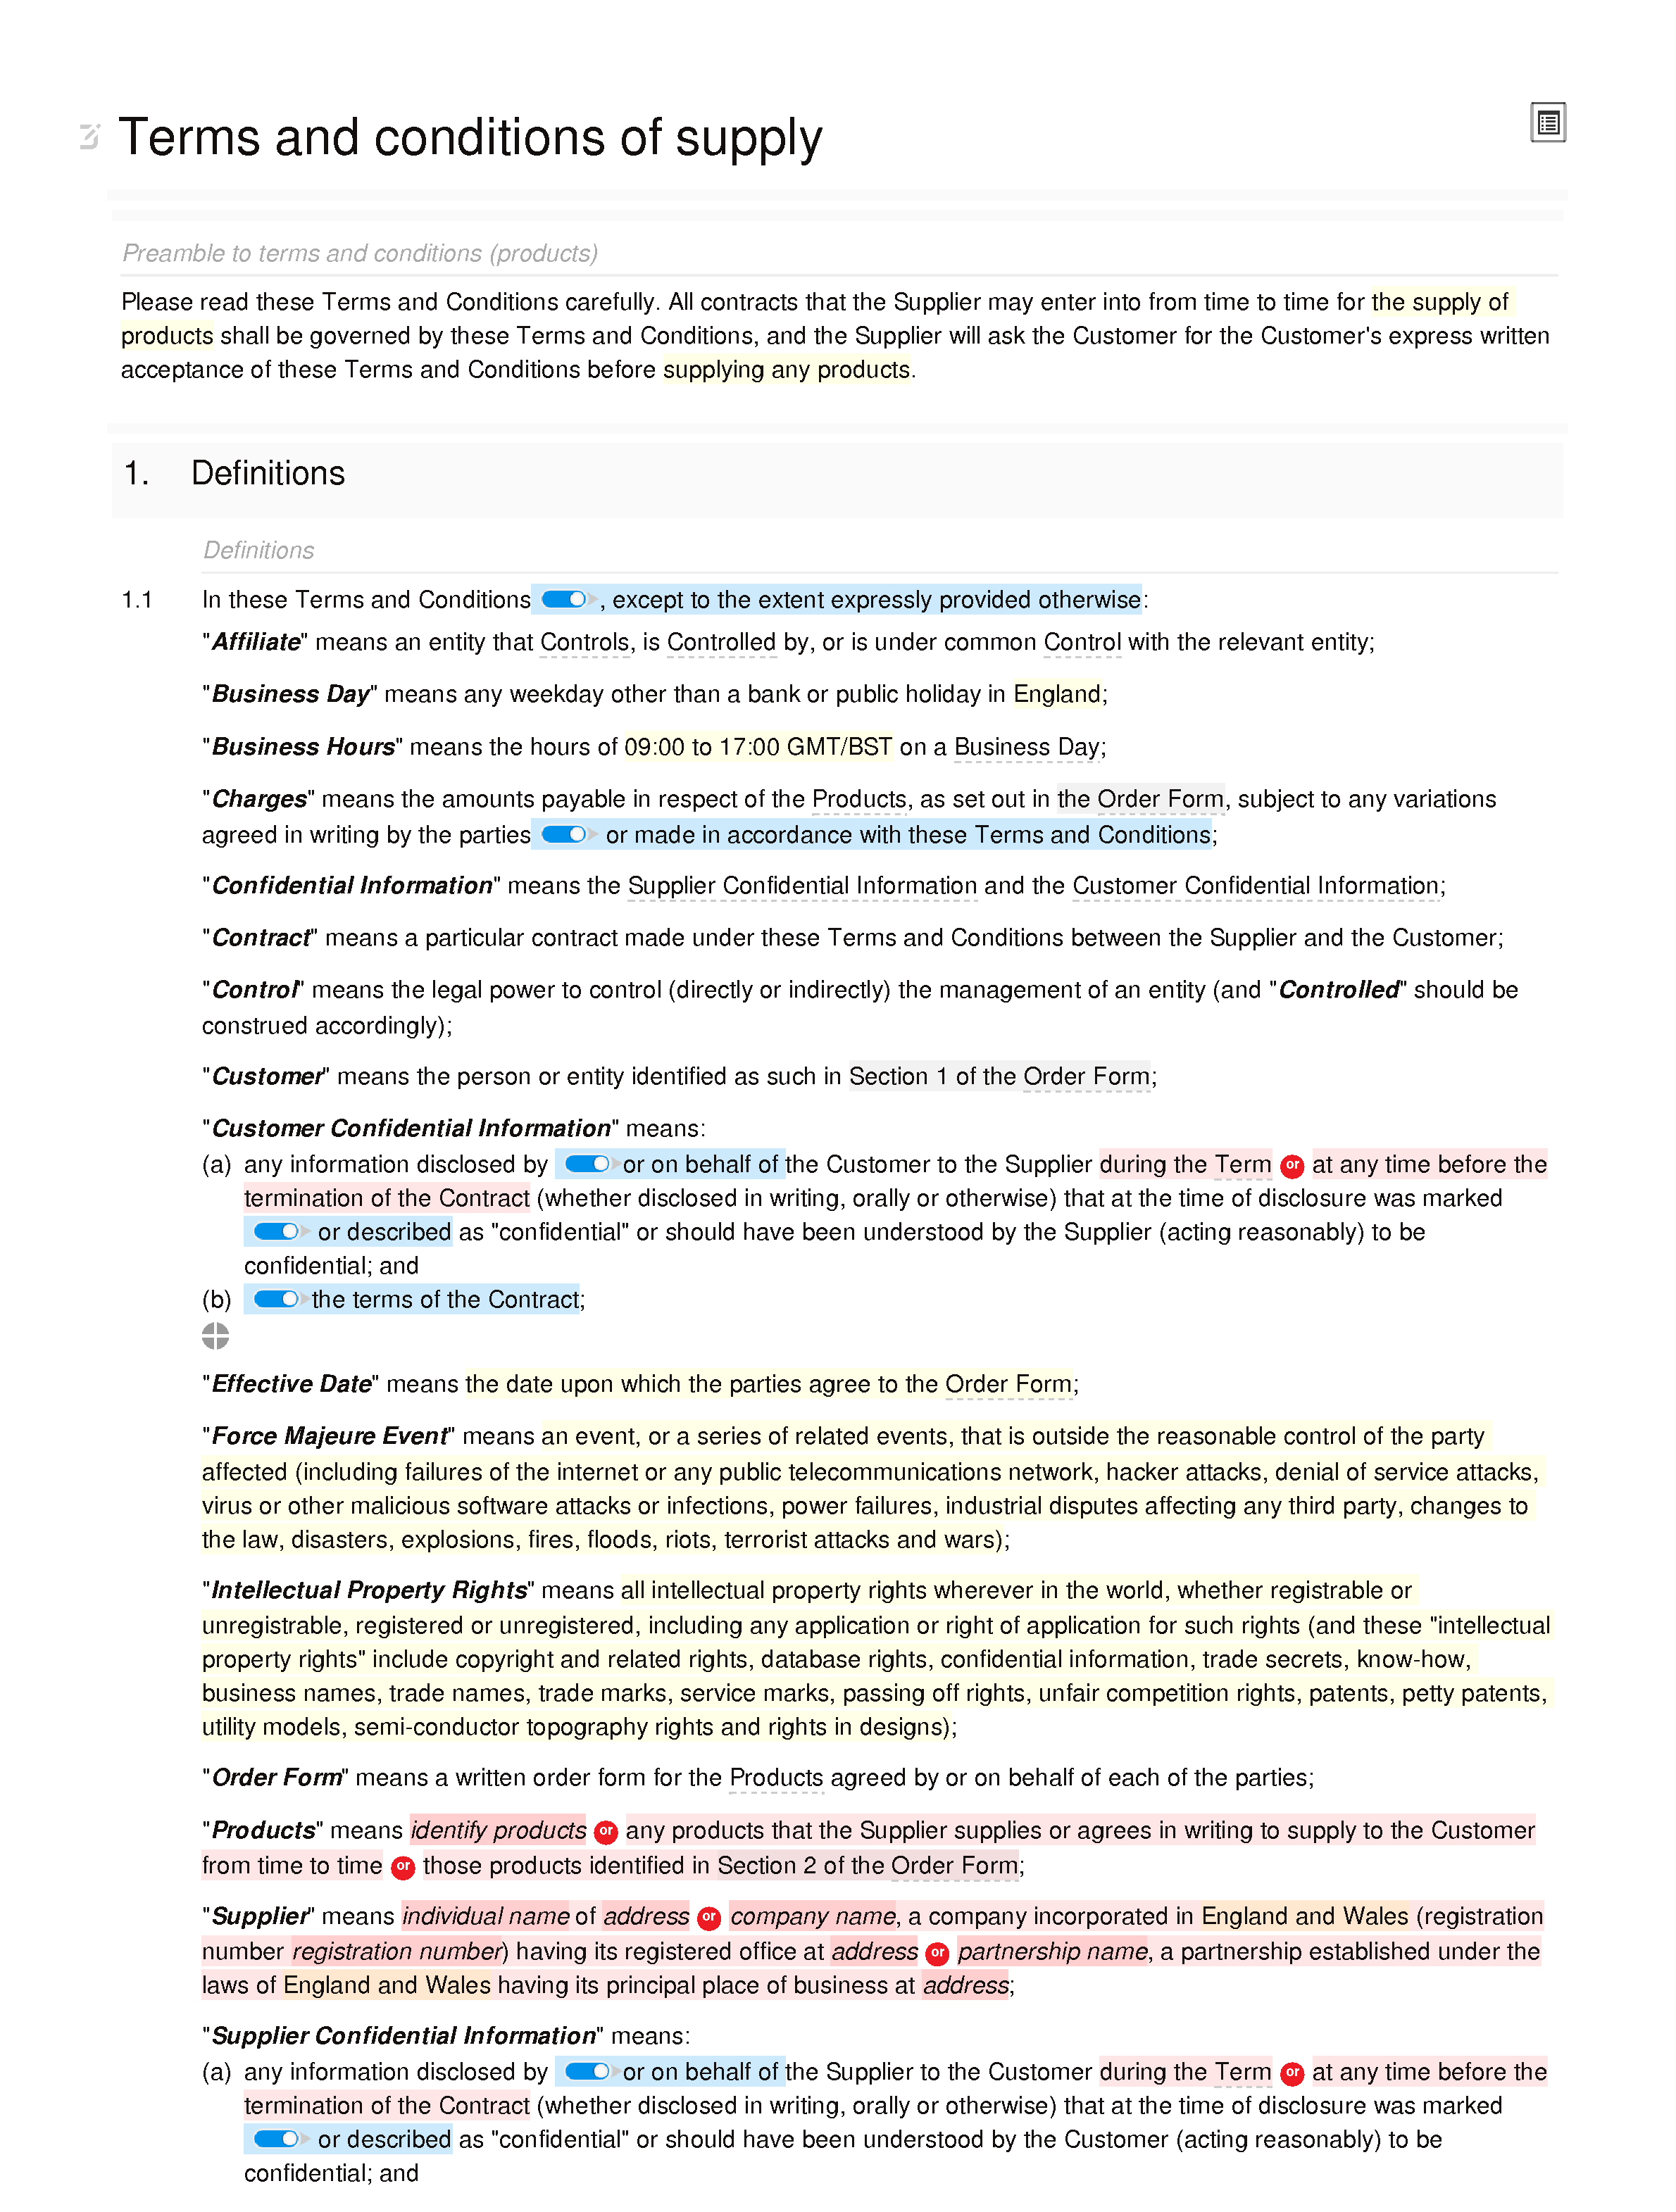 Terms and conditions of supply (premium) document editor preview